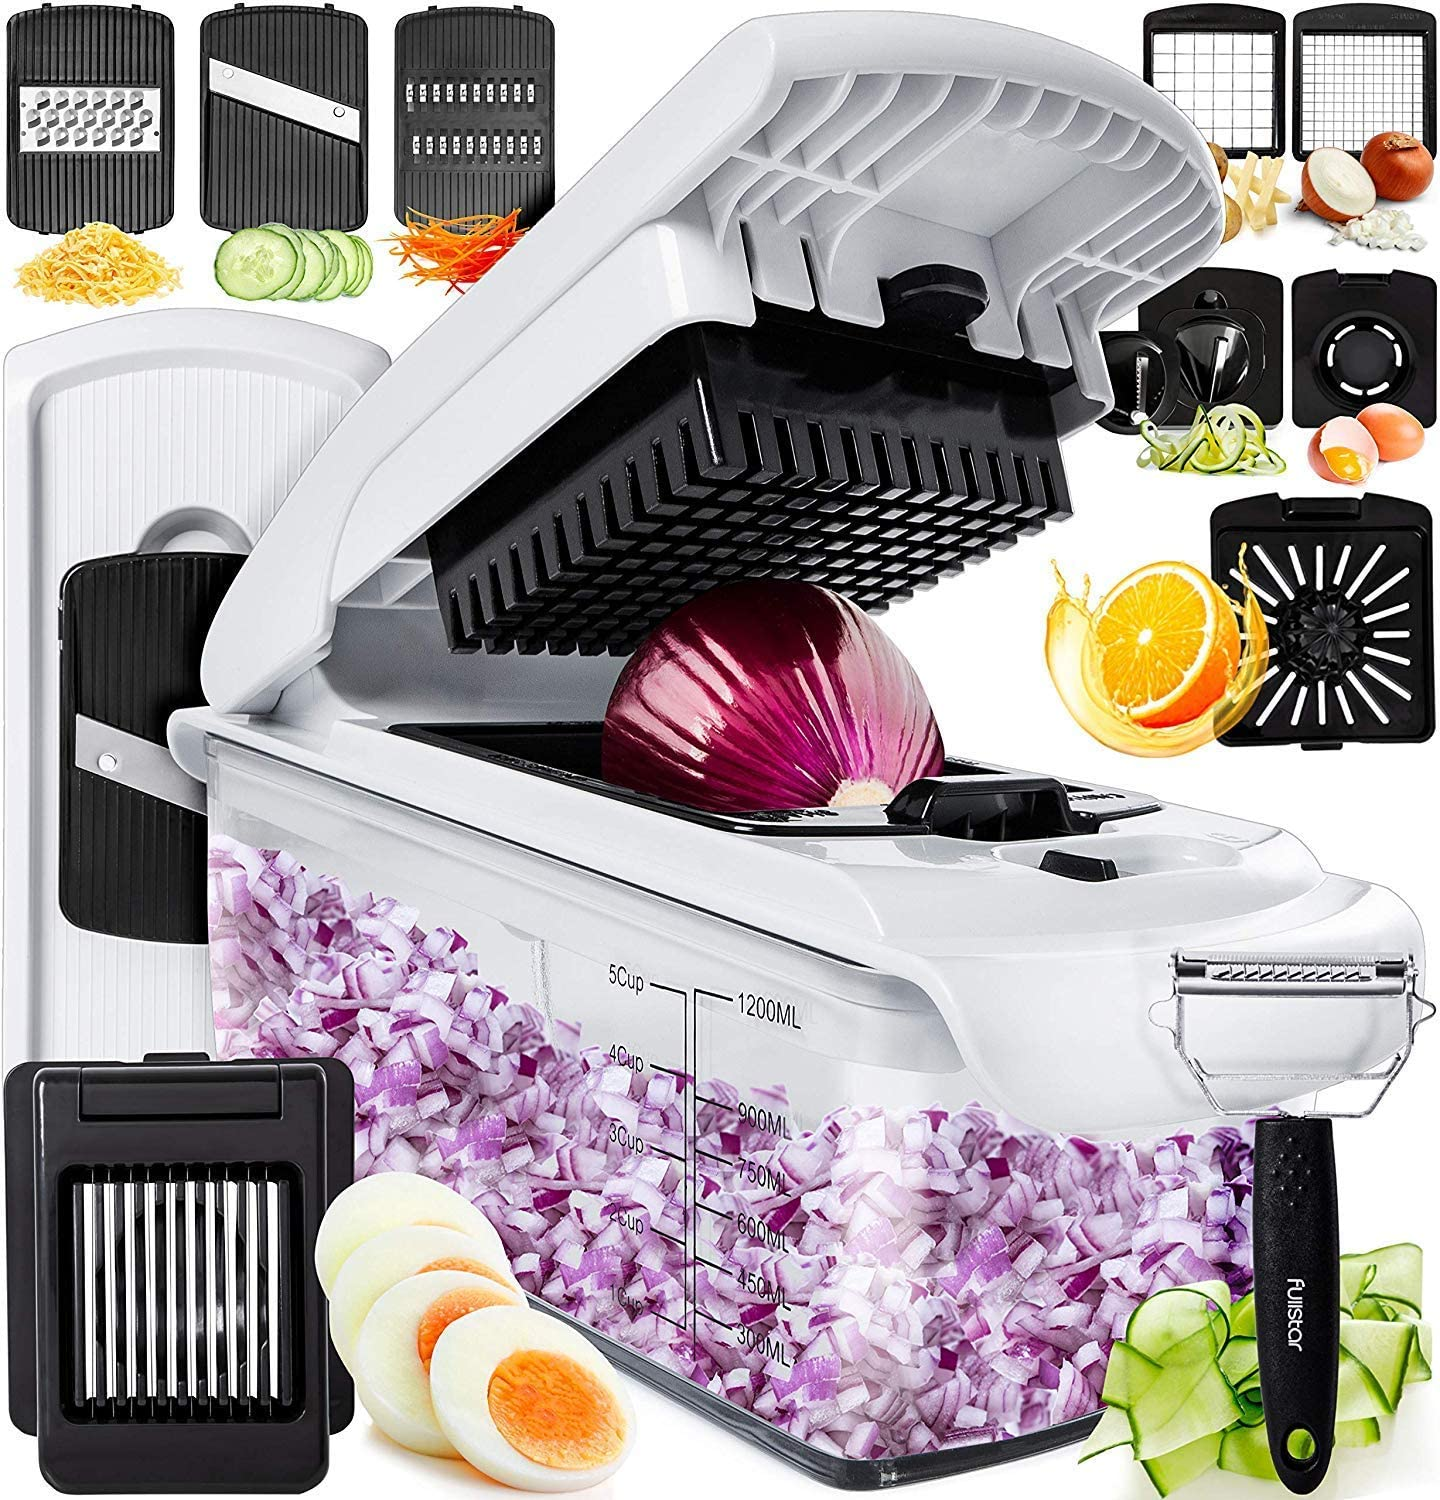 Fullstar Vegetable Chopper Dicer Mandoline Slicer